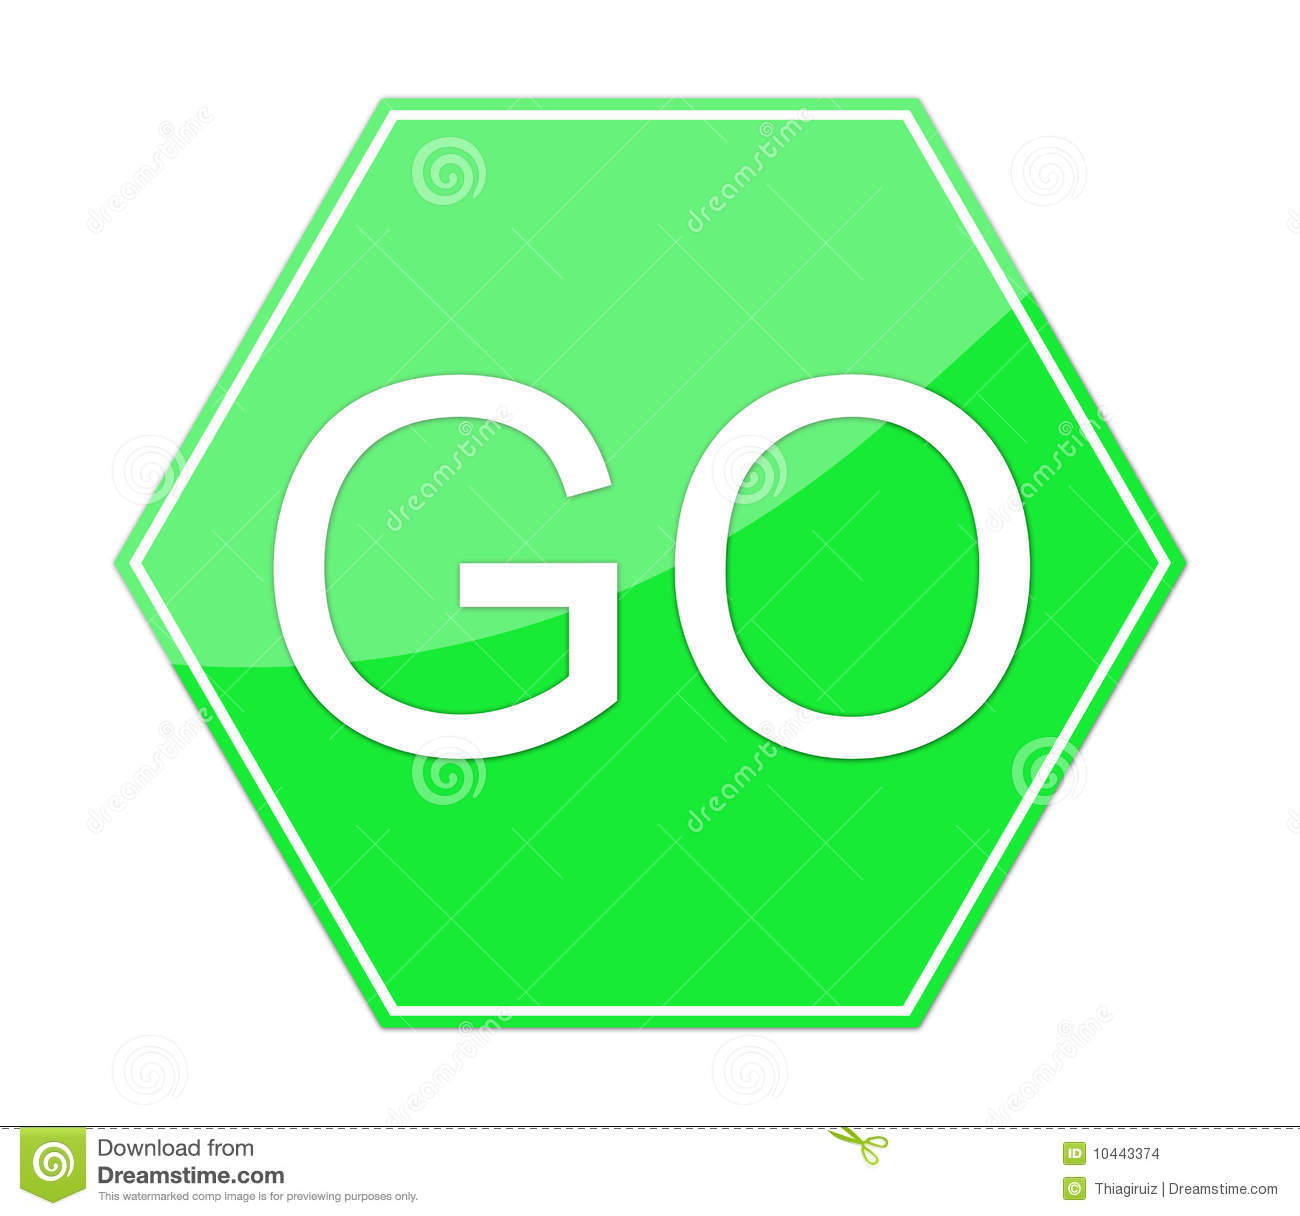 Go Sign Clip Art